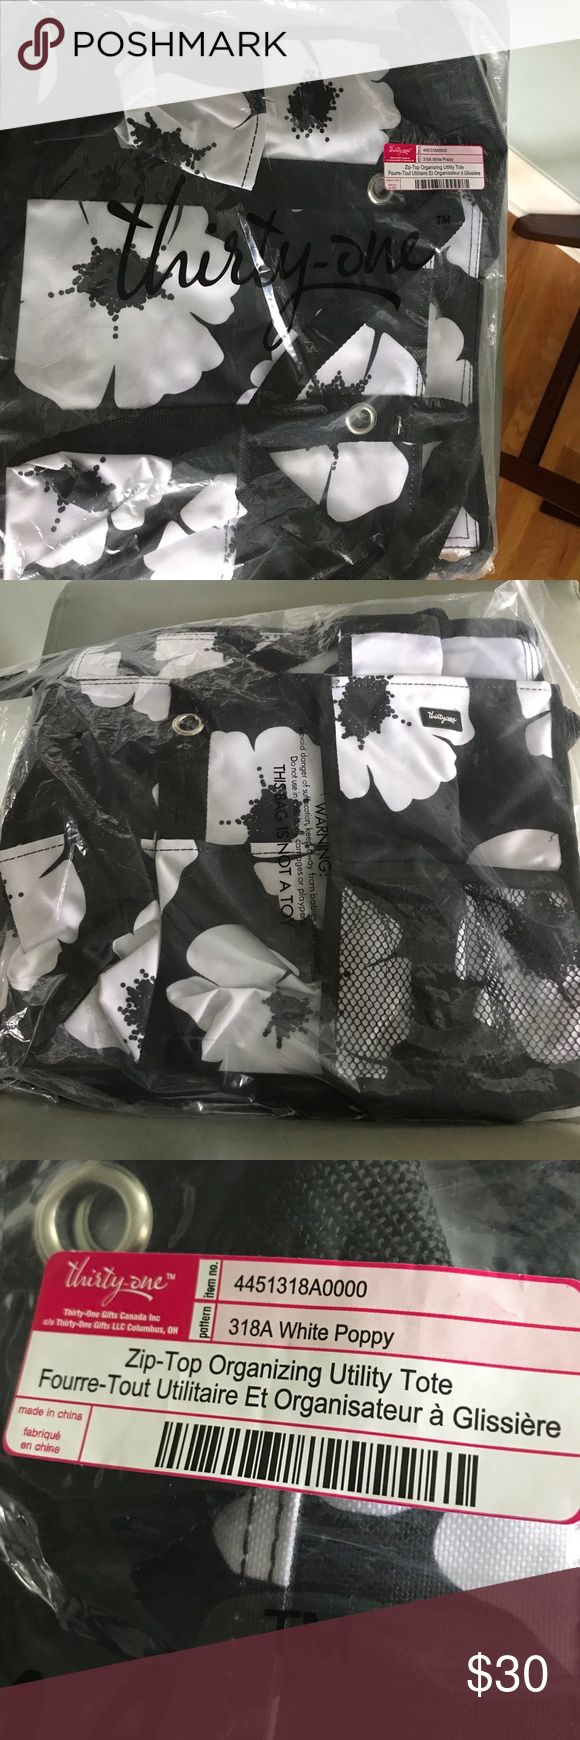 NWT Thirty-One Zip top Organizing Utility Tote Retired Hard to find White poppy Tote Zip top, 7 exterior Pockets NWT 10.75H 14.5 L Thirty-One Bags Totes